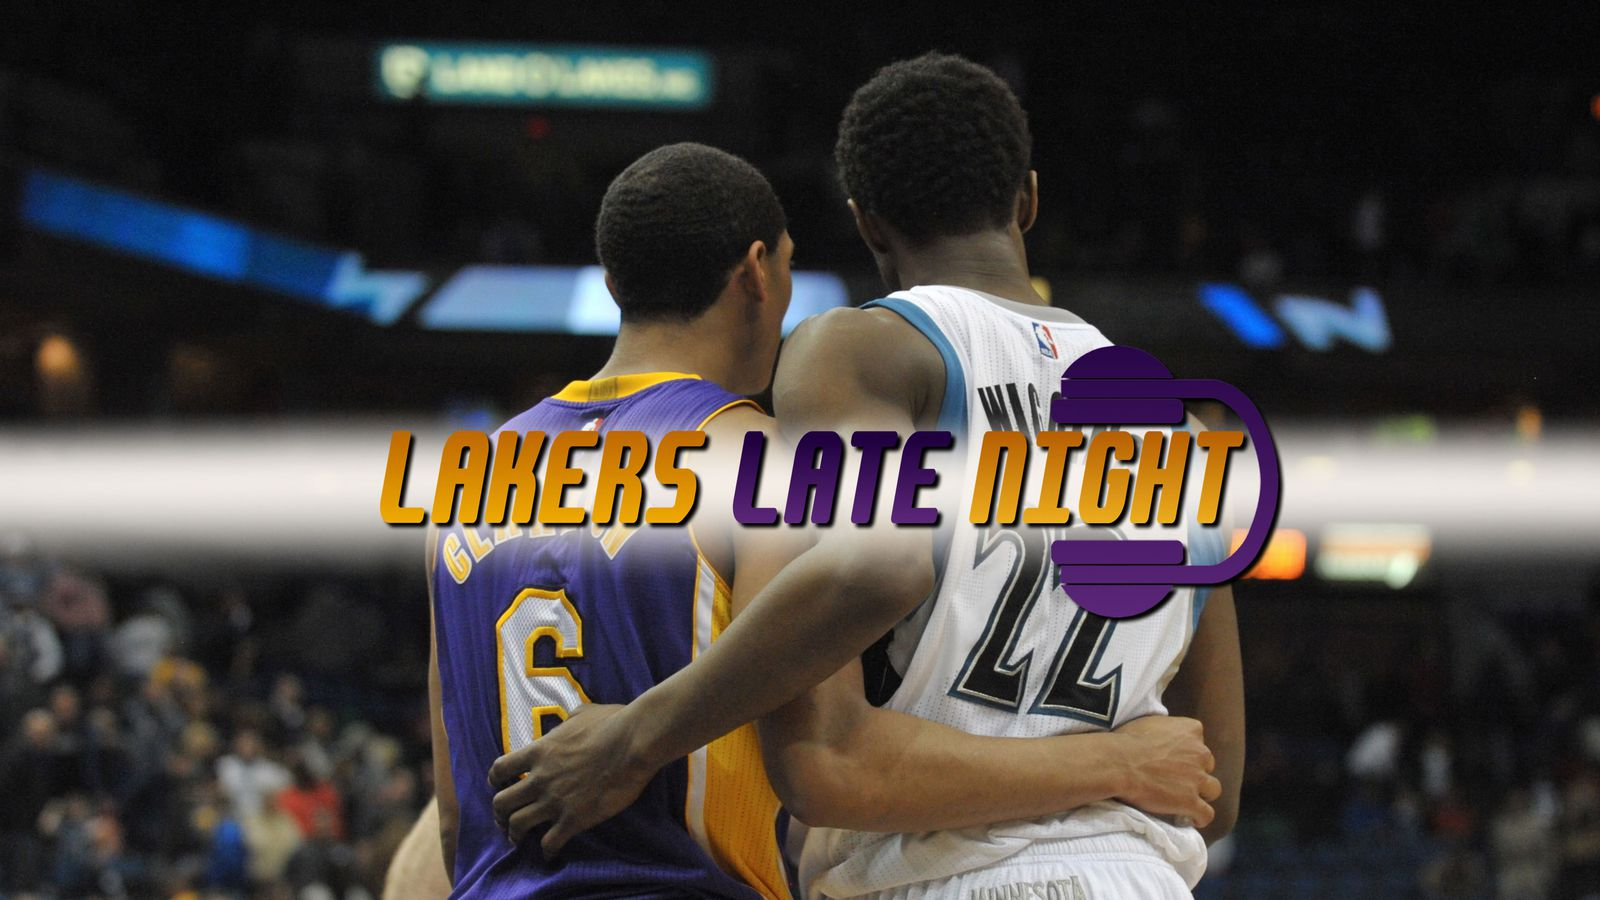 Lakers Vs. Timberwolves Postgame Show: Talking Through The